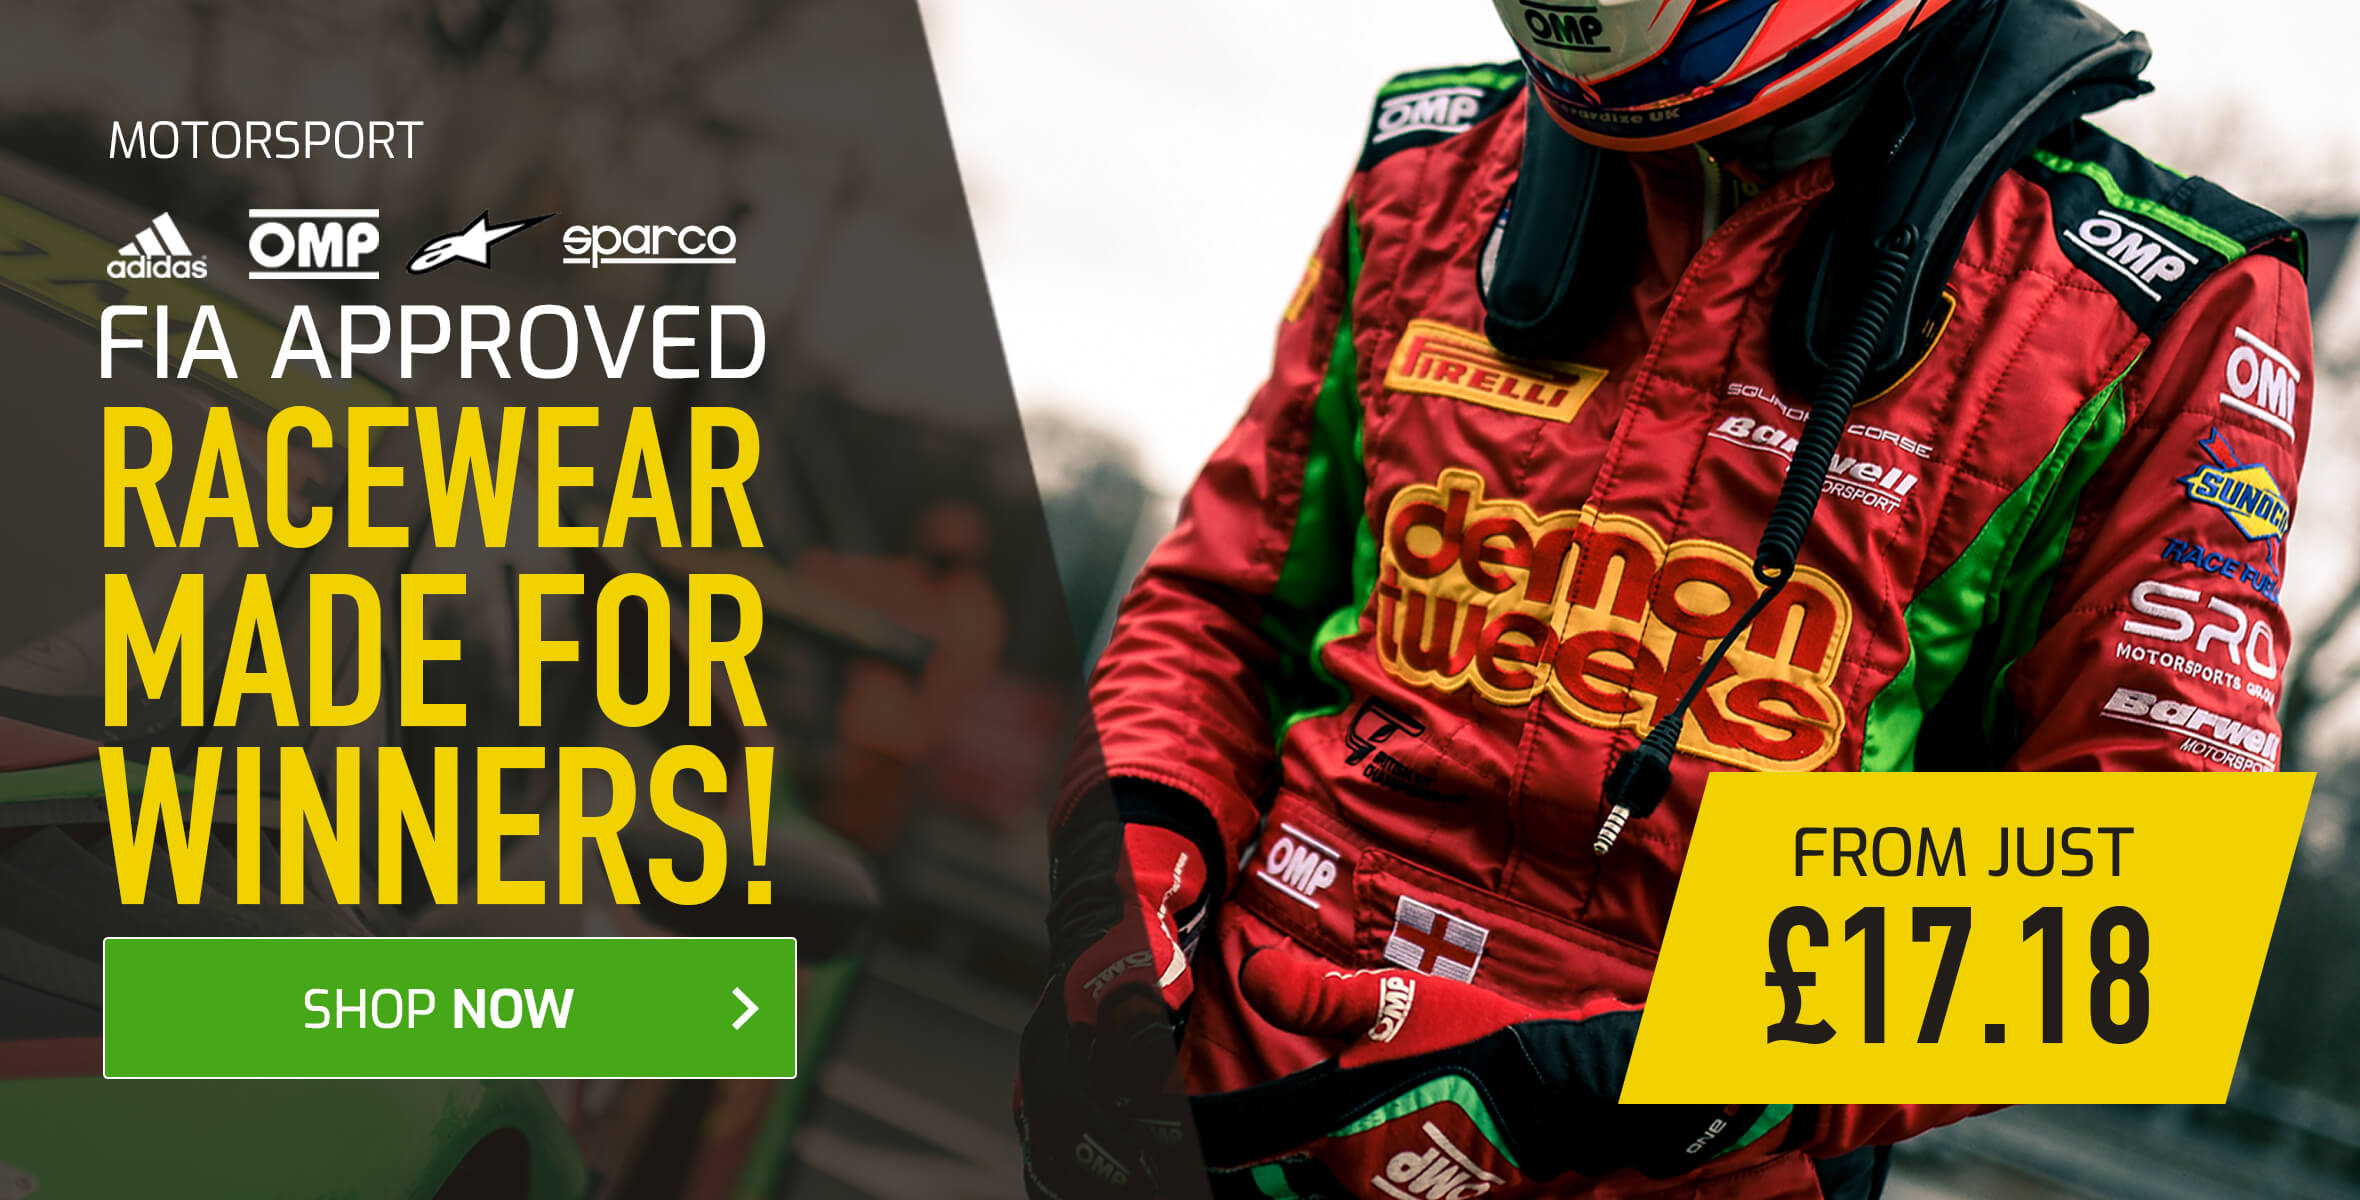 FIA Approved Racewear Made For Winners!